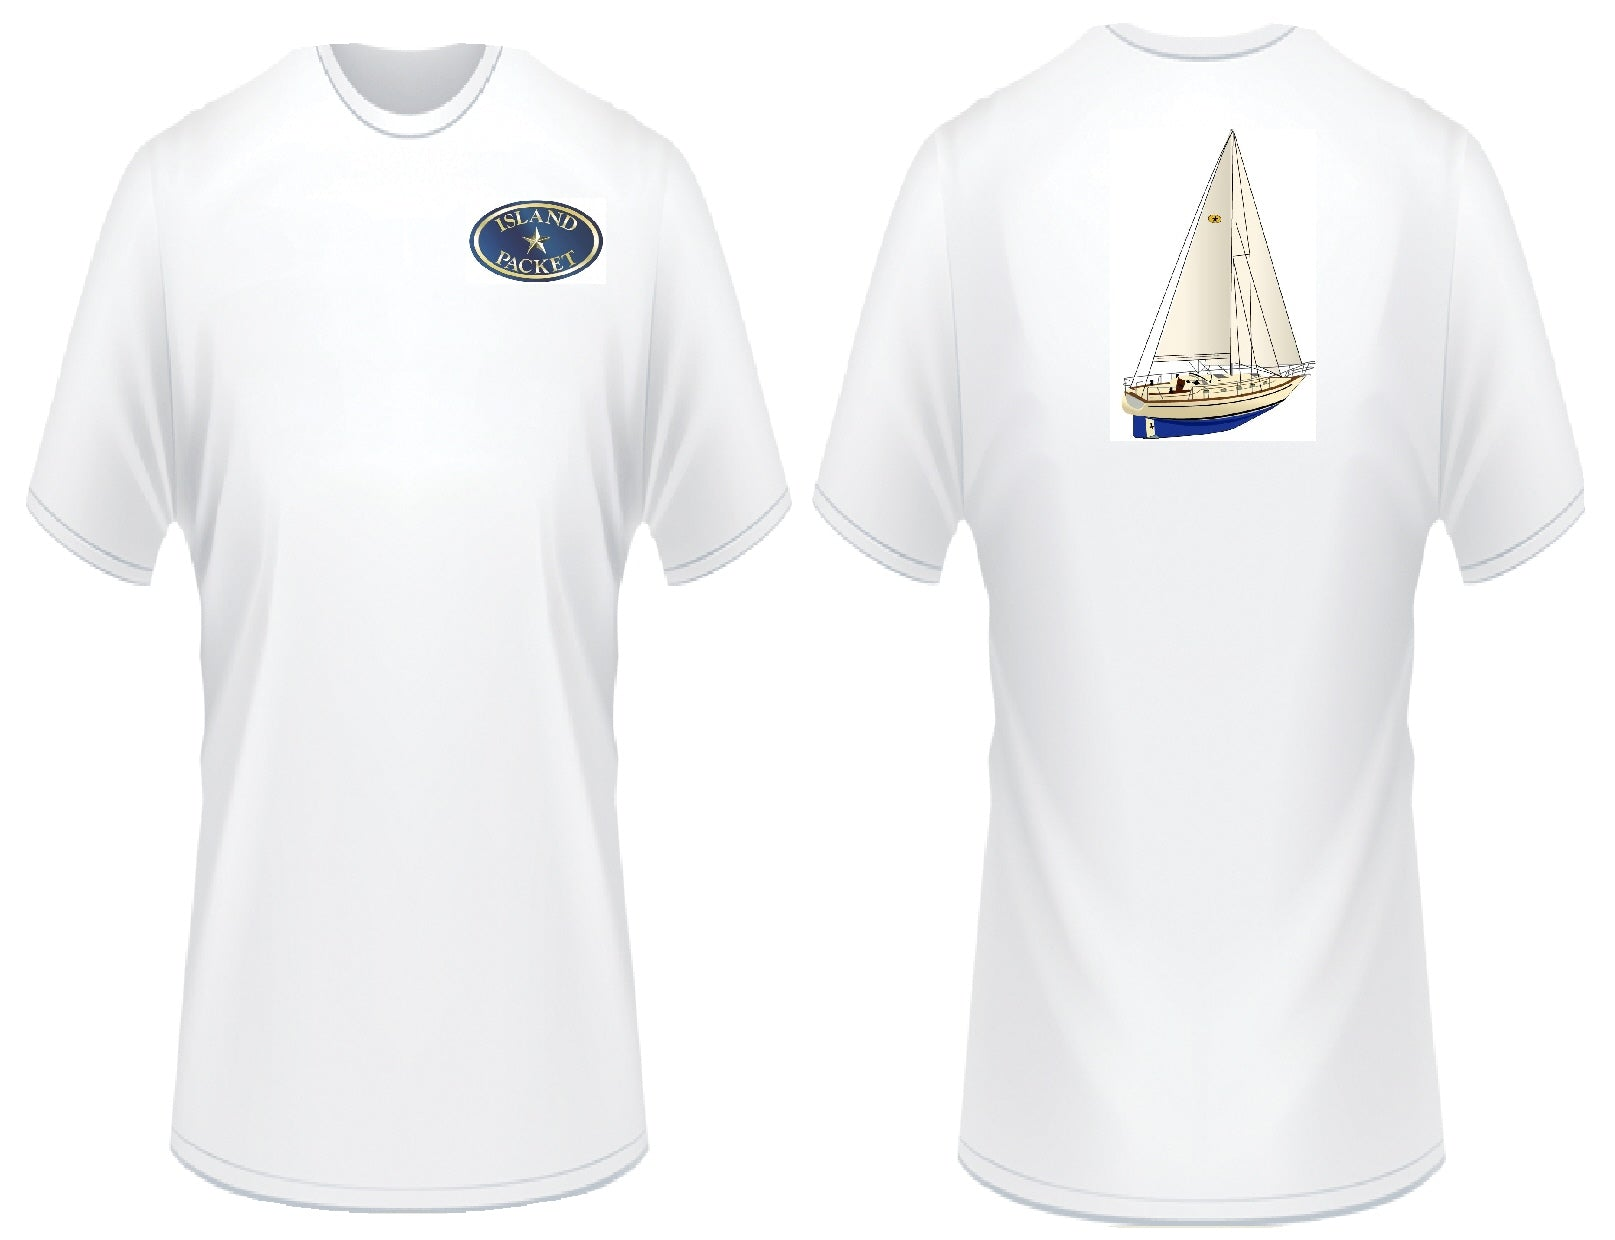 Island Packet 350 T-Shirt